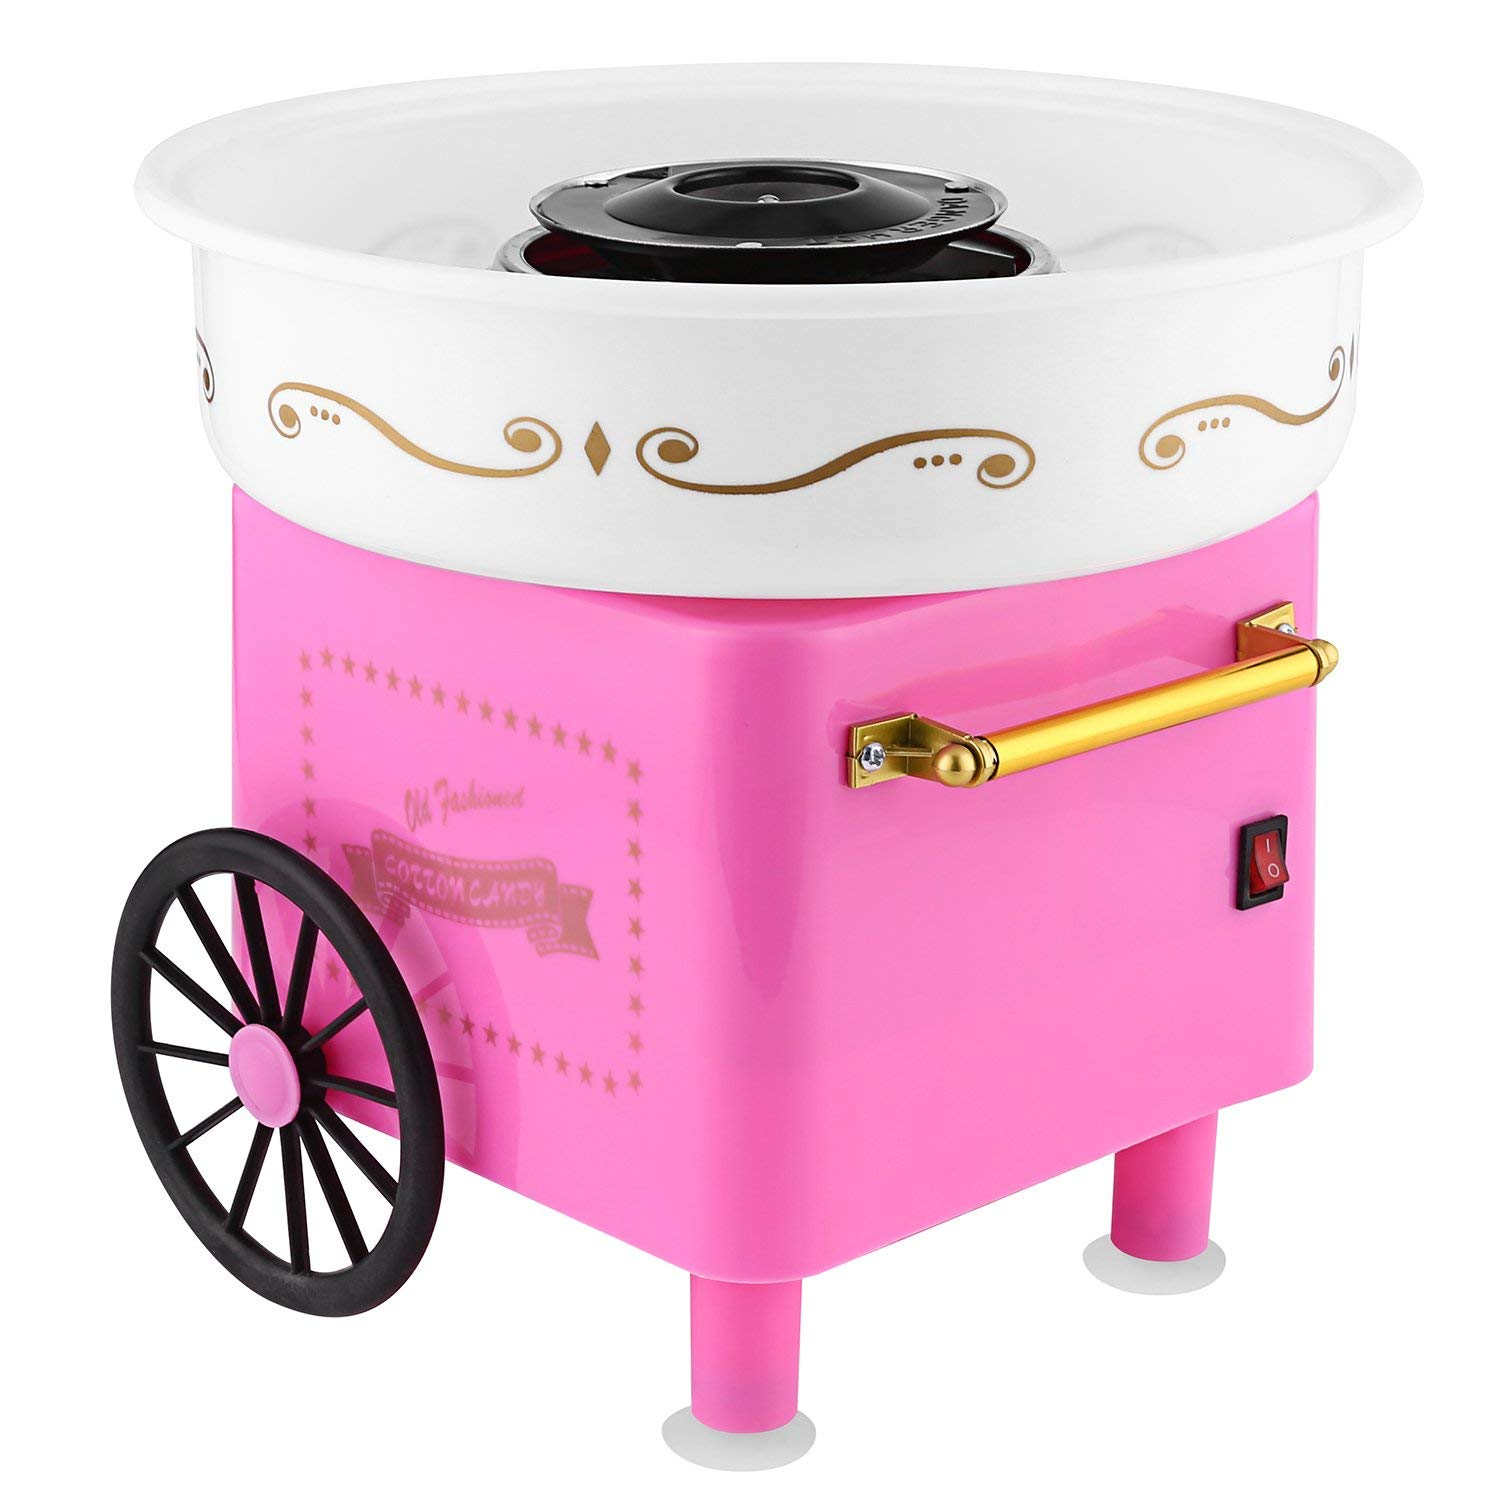 Pagacat Cotton Candy Machine,Pink Electric Sugar-Free Cotton Candy Maker for Party and Children(US Stock)